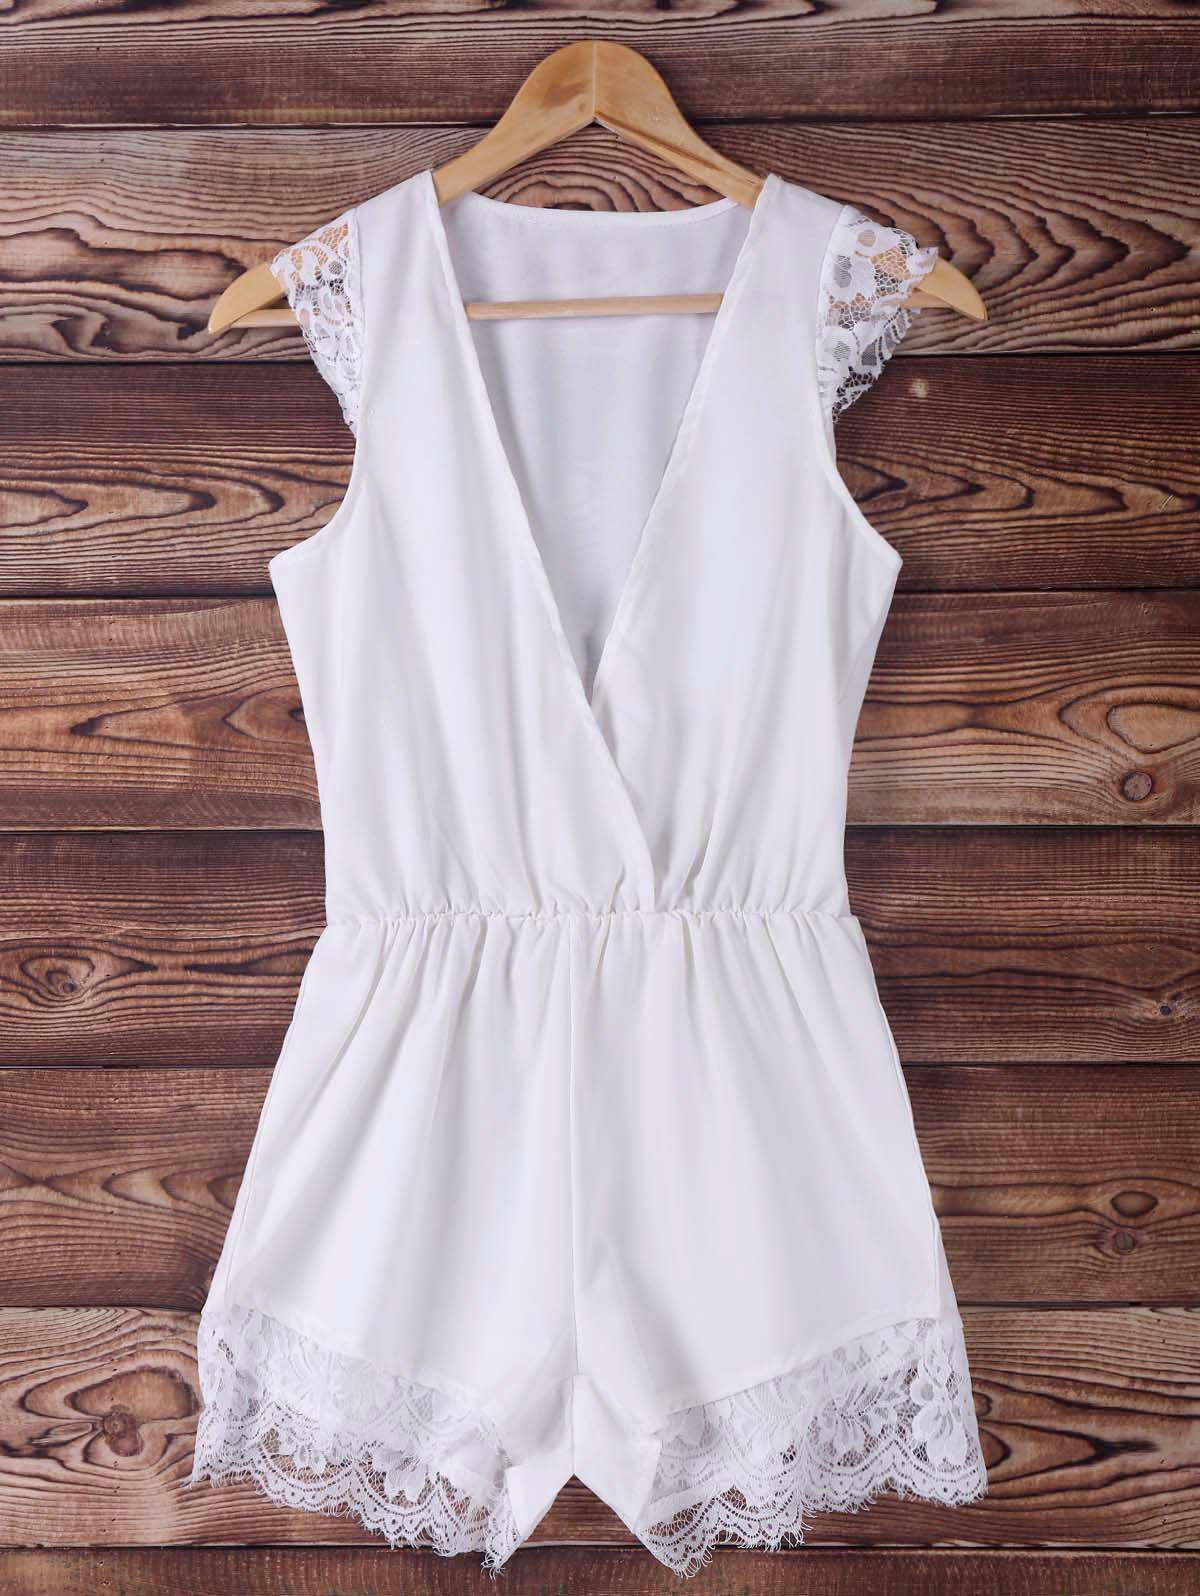 Chic Women's Plunging Neck White Lace Spliced Sleeveless Romper - WHITE L